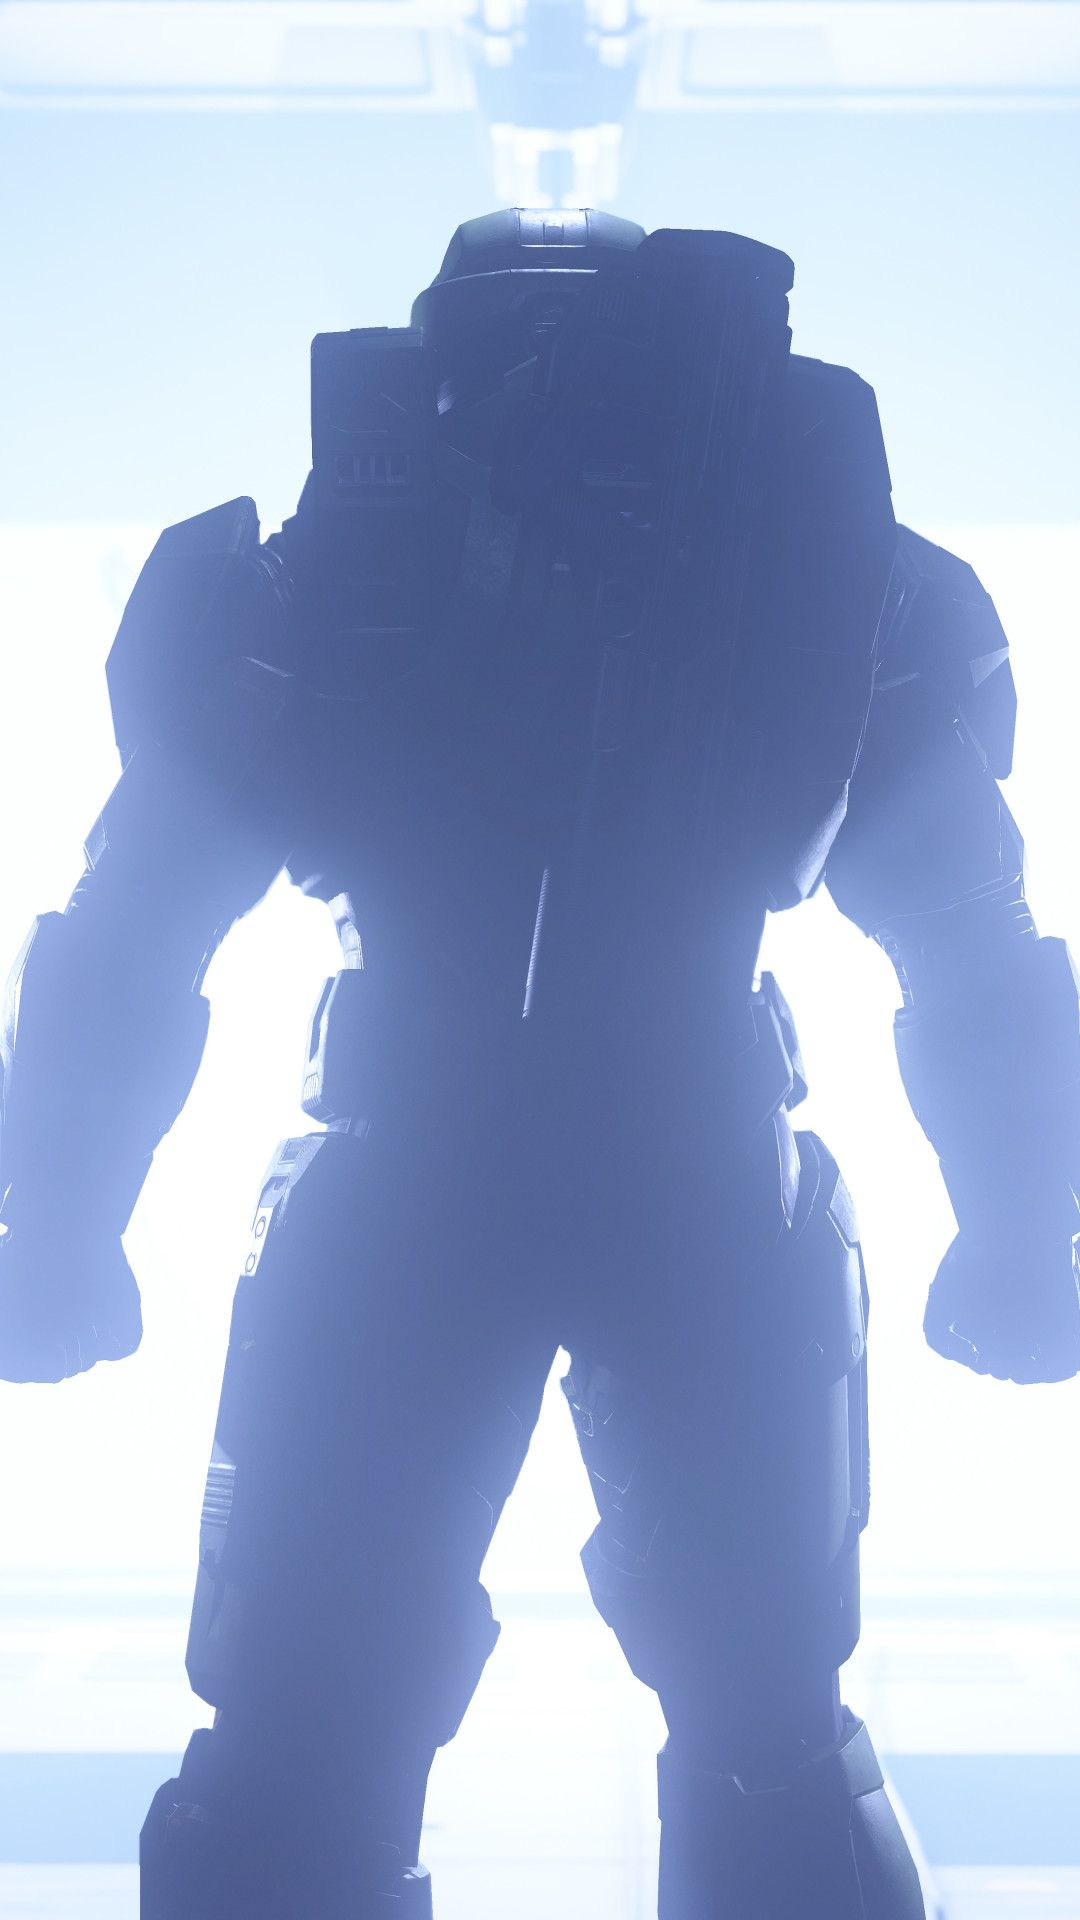 2019 Halo Infinite 8k Mobile Wallpaper Iphone Android Samsung Pixel Xiaomi In 2020 Cortana Halo Halo Master Chief Halo